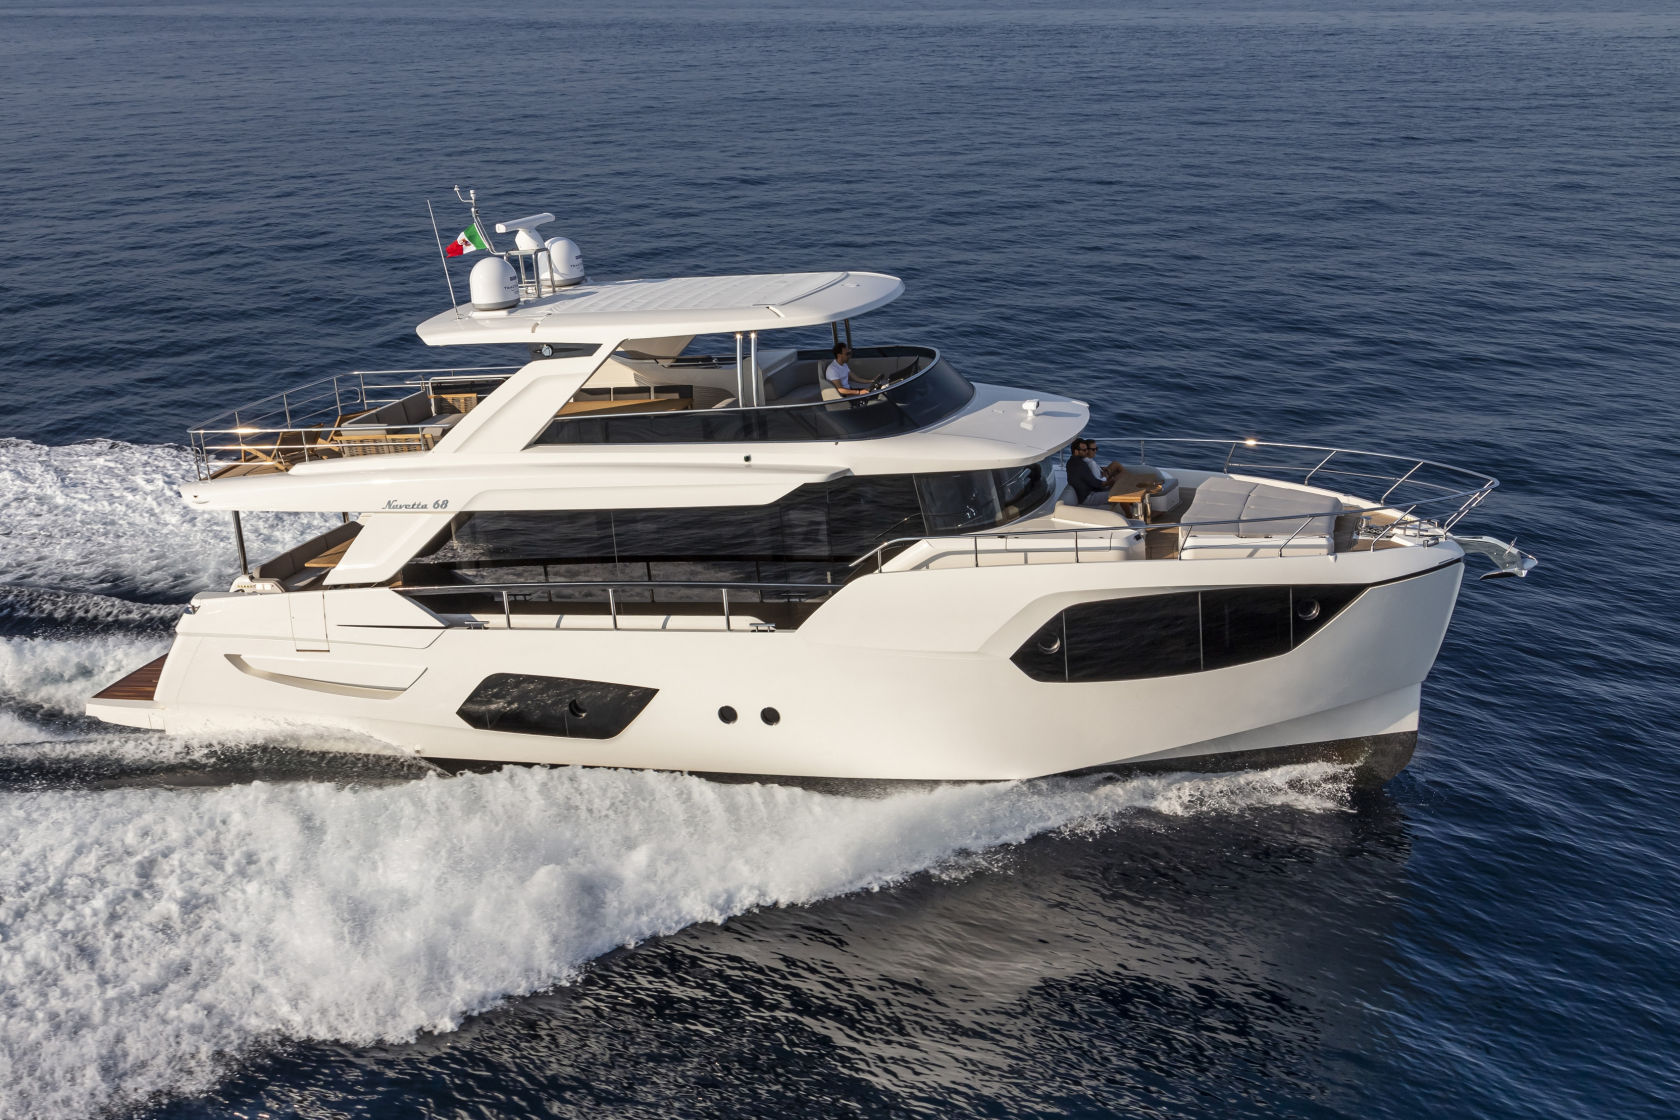 360 VR Virtual Tours of the Absolute Navetta 68 – VRCLOUD